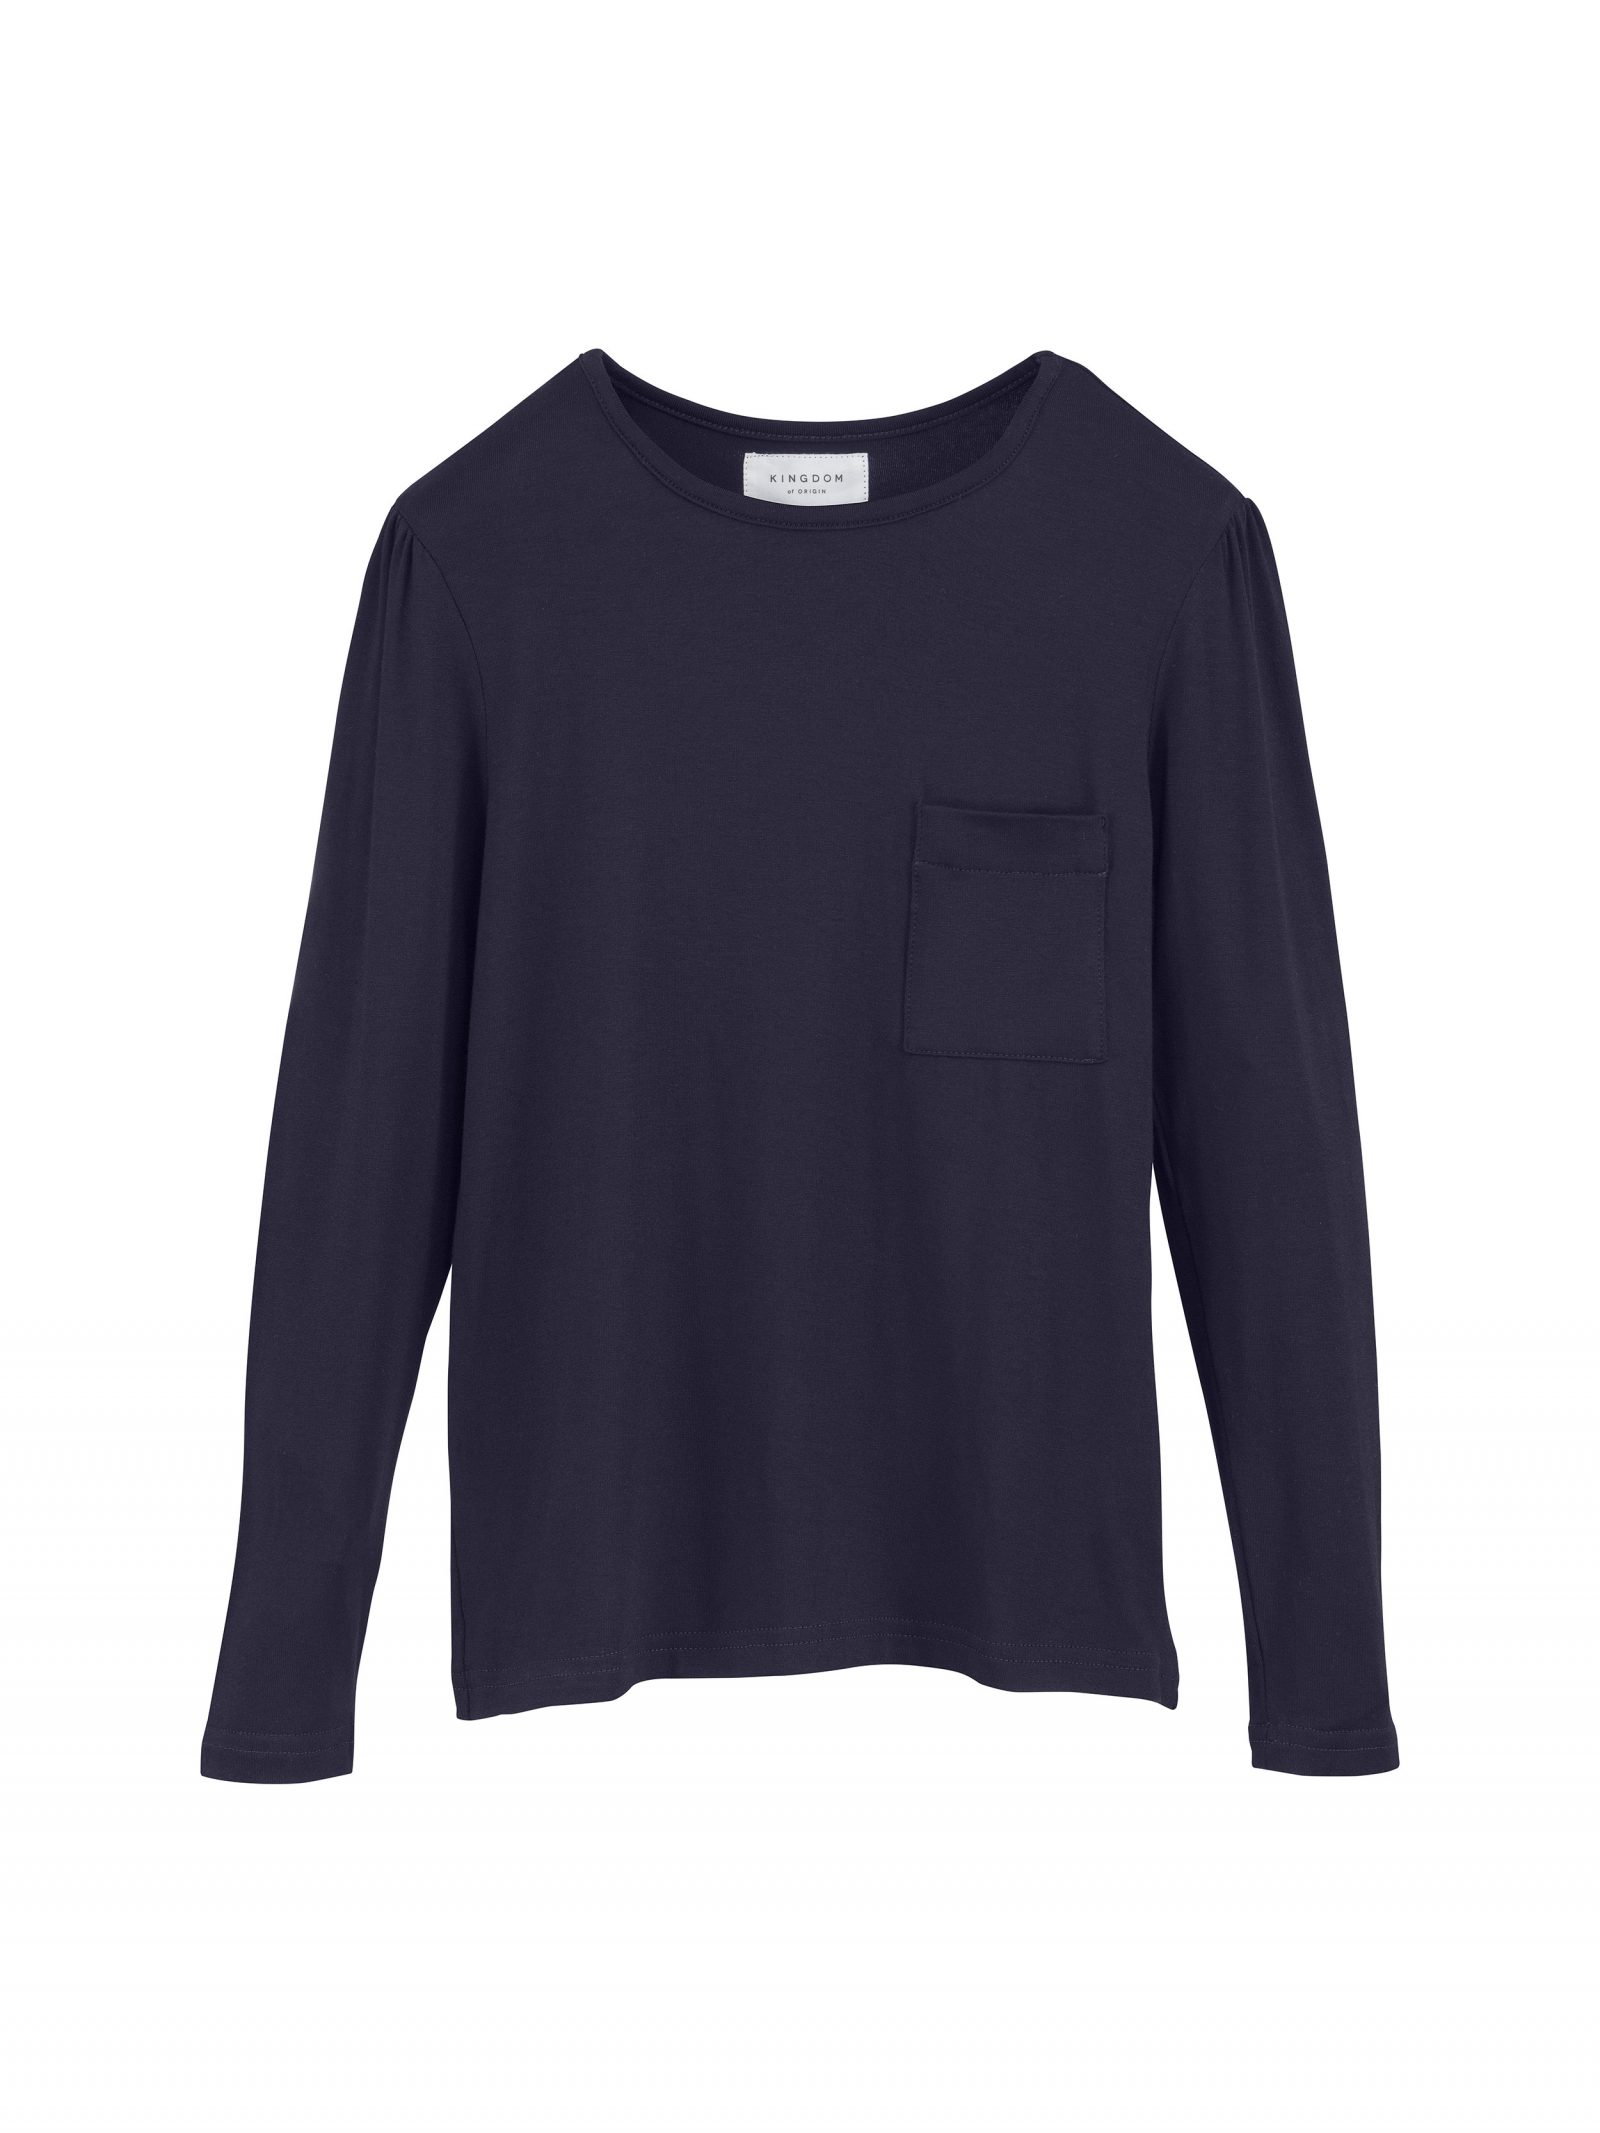 Kate Long Sleeve T Shirt in Navy - Front